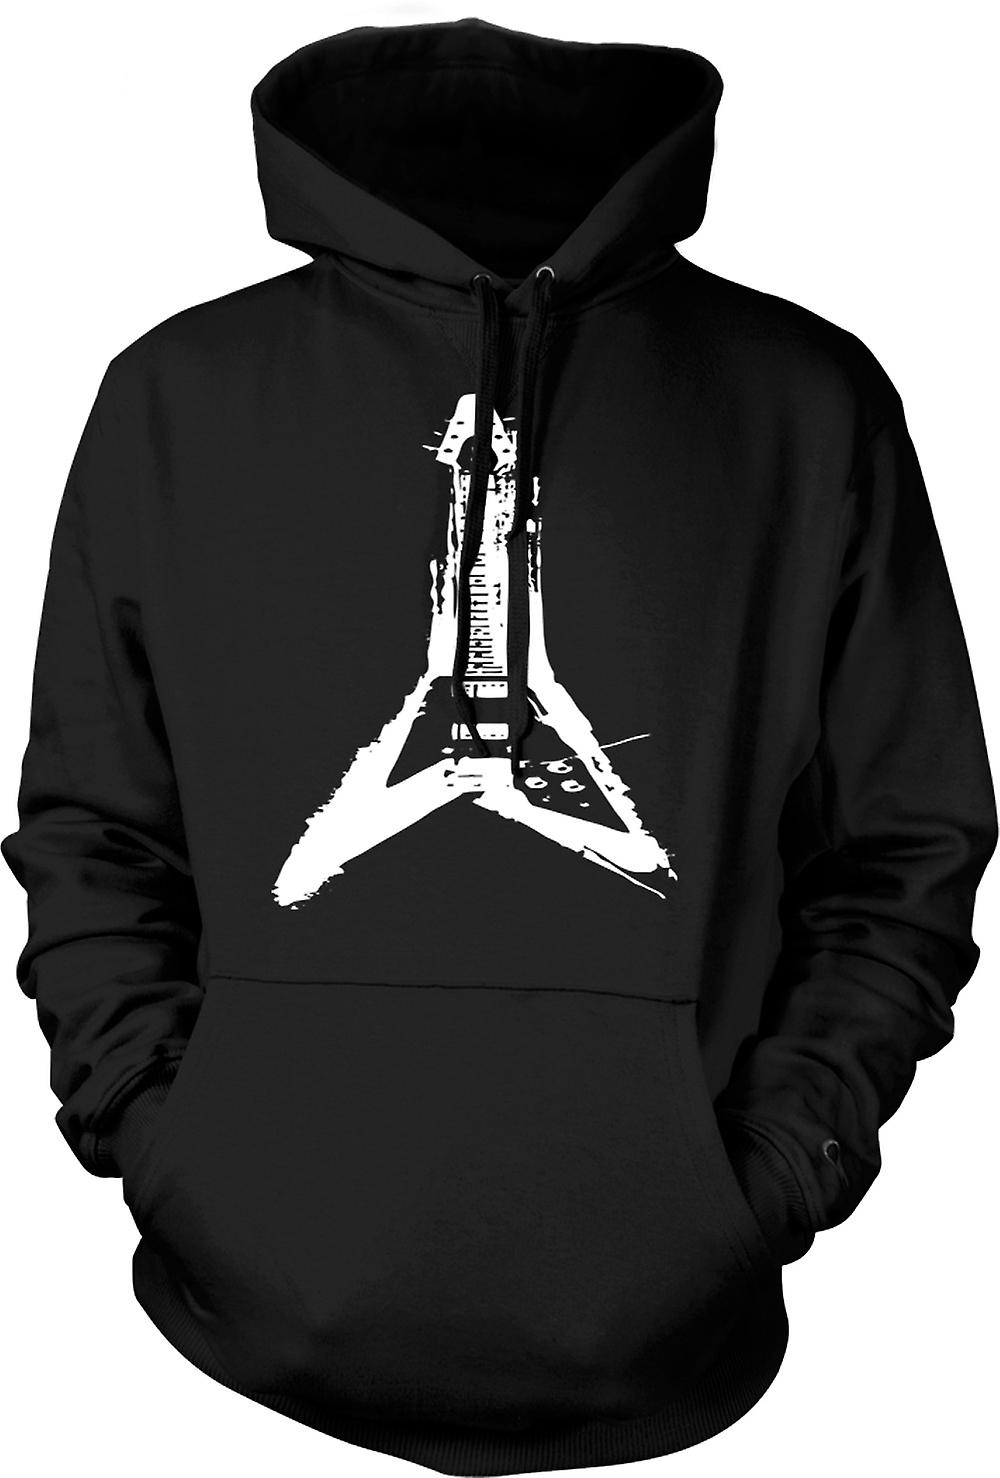 Mens Hoodie - Gibson Flying V Guitar - Rock Metal